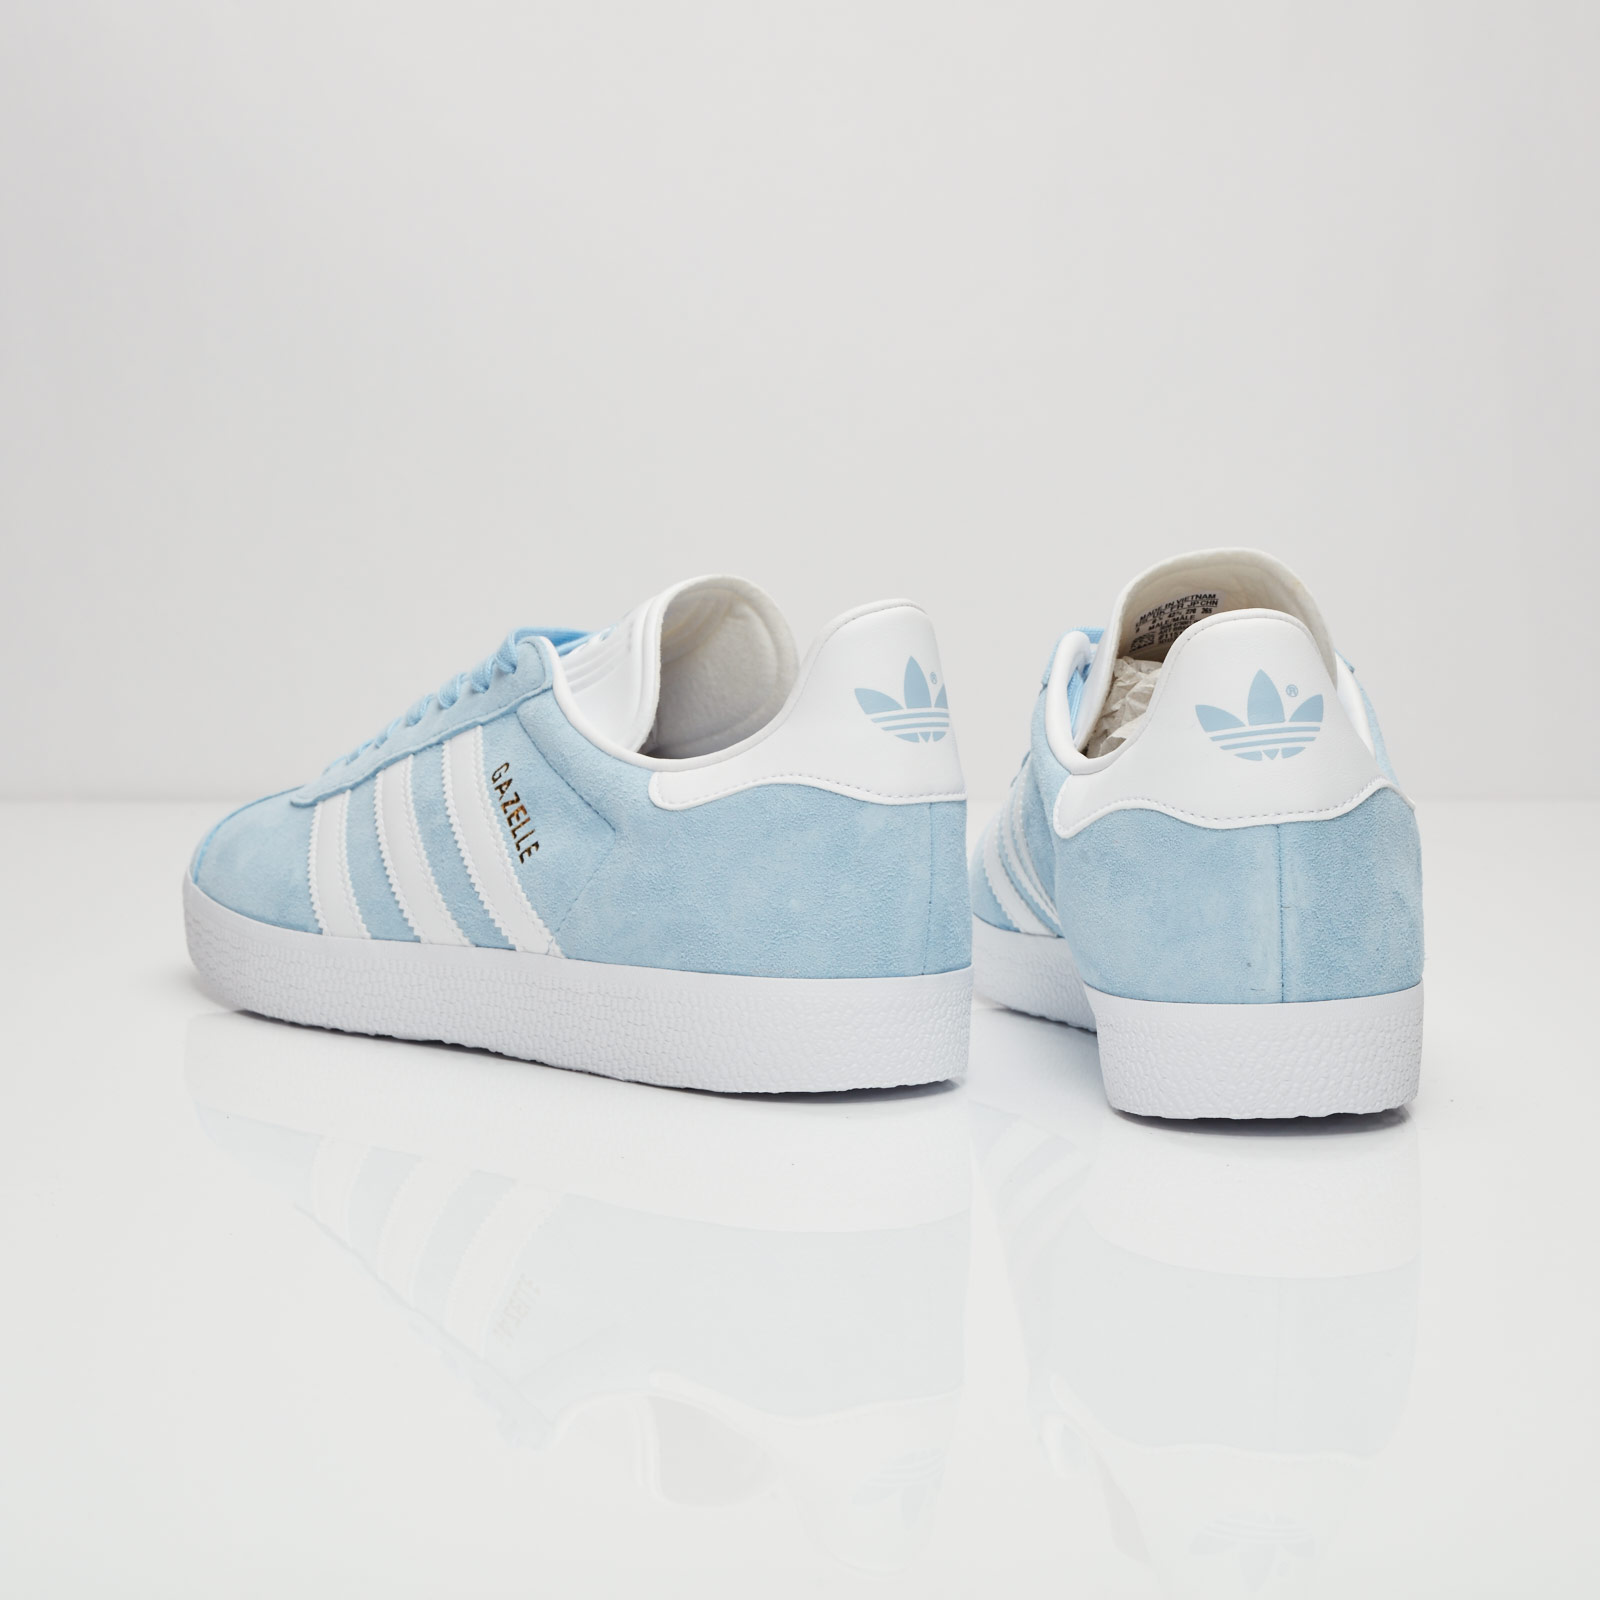 competitive price 62a34 1f720 adidas Gazelle - Bb5481 - Sneakersnstuff   sneakers   streetwear online  since 1999